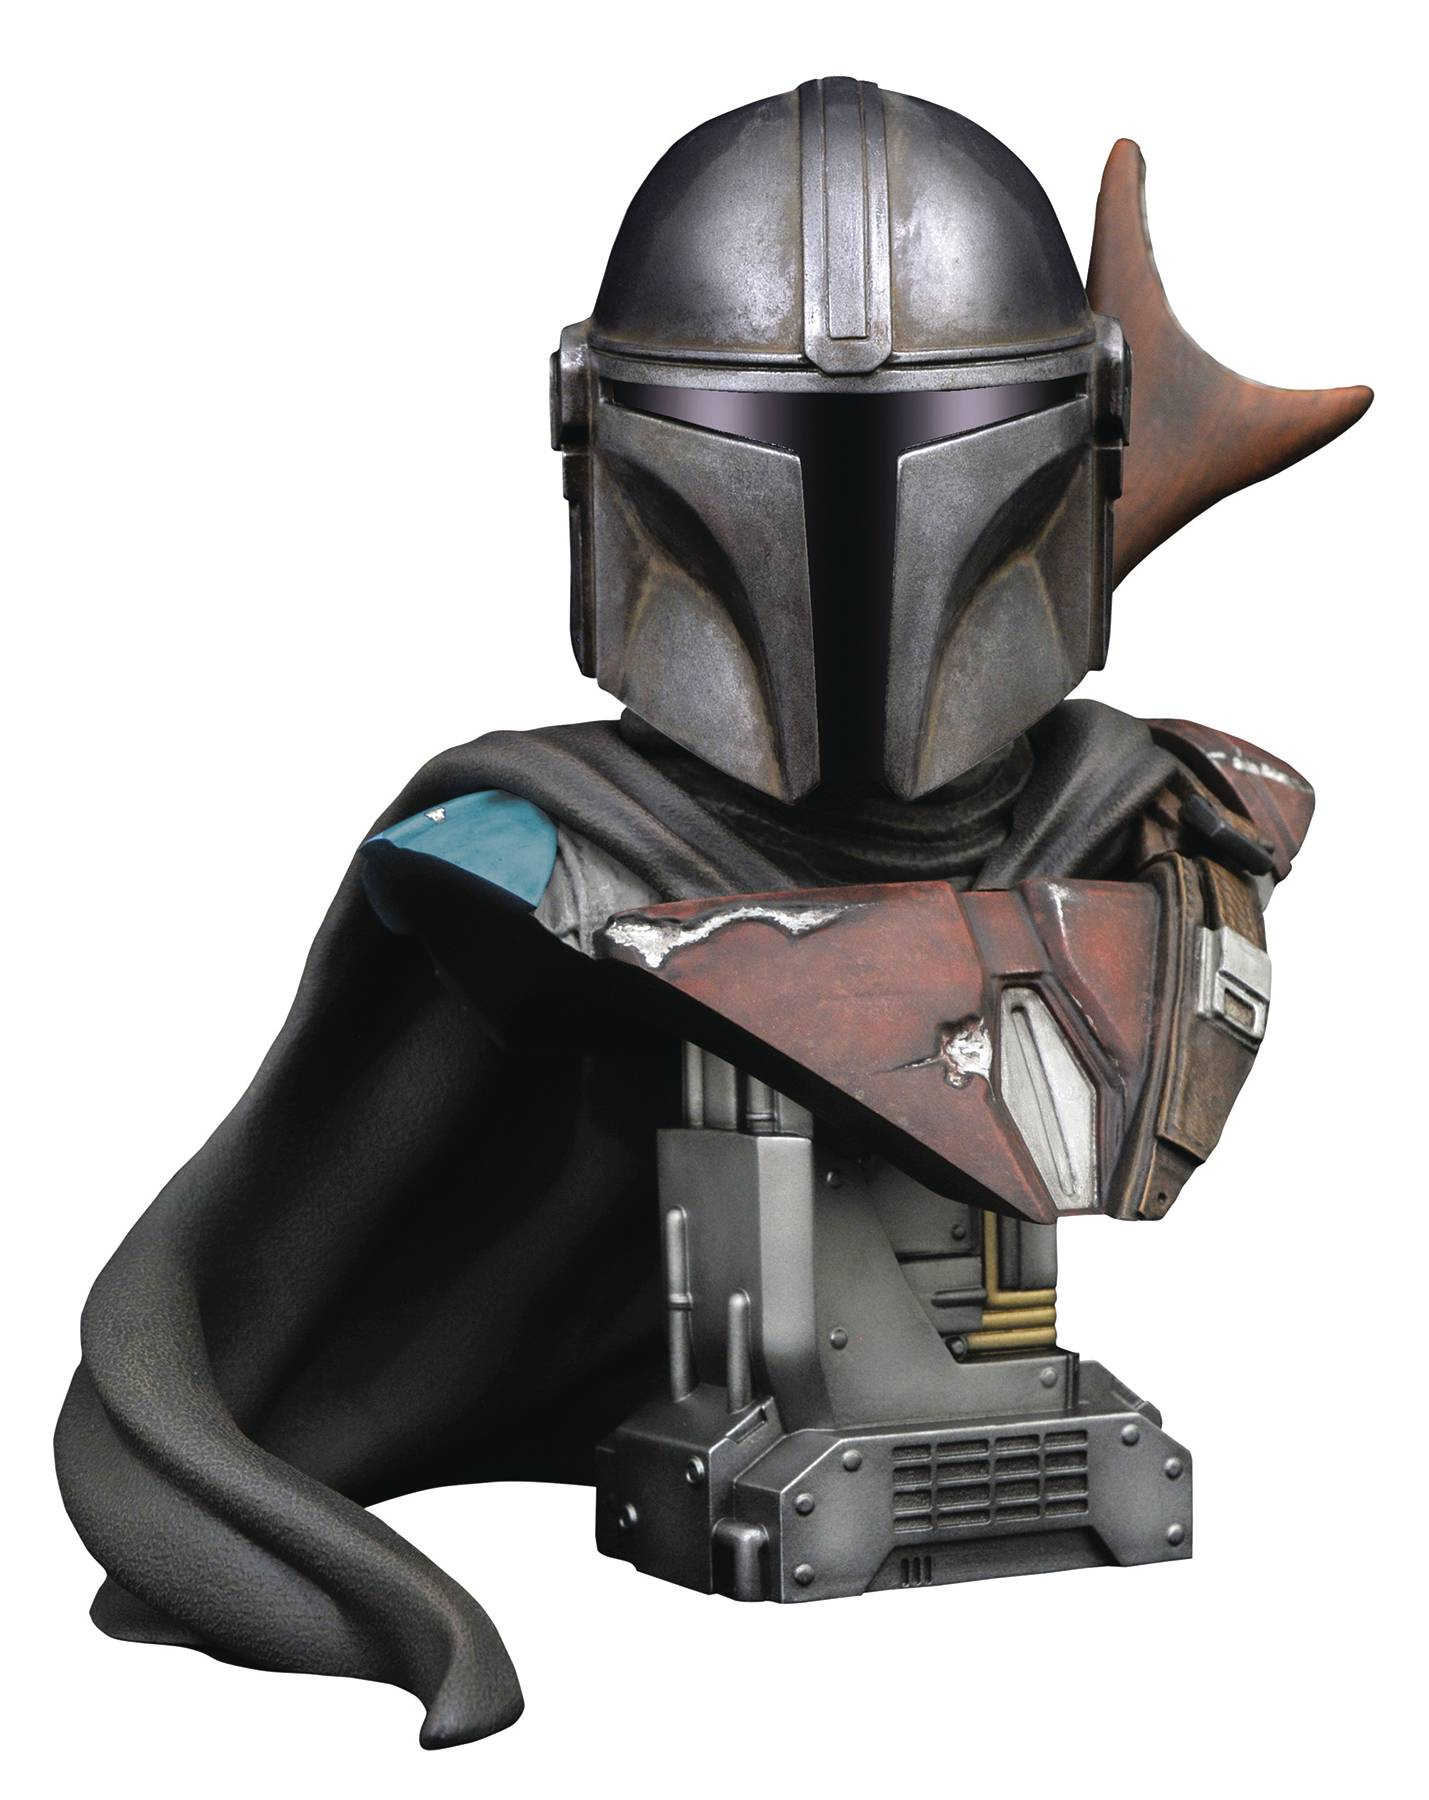 STAR WARS LEGENDS IN 3D MANDALORIAN 1/2 SCALE BUST